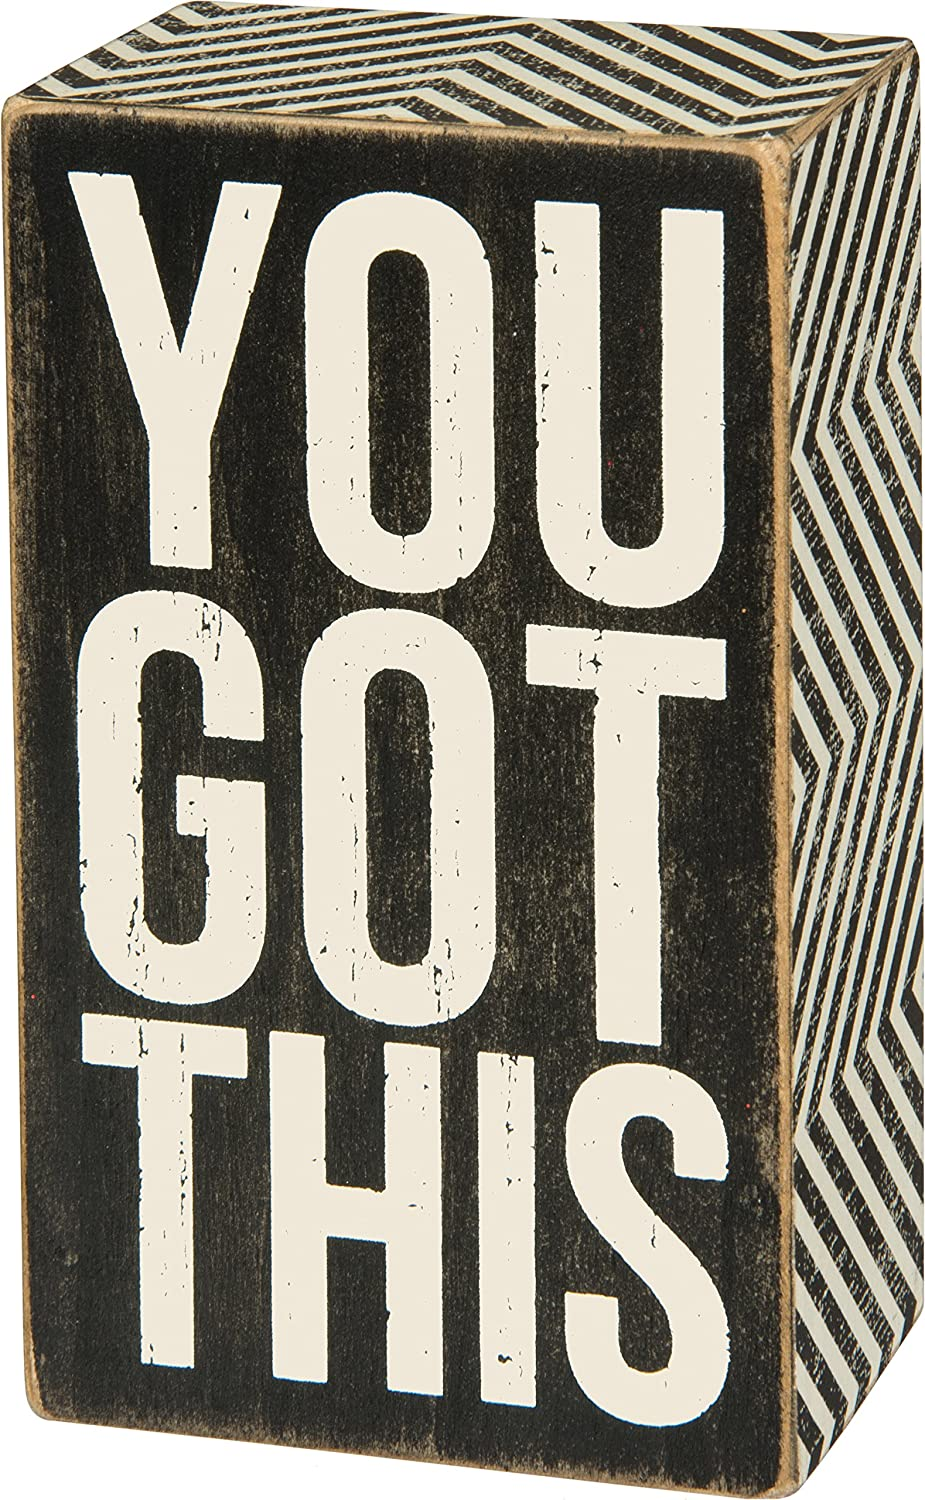 "Primitives By Kathy Box Sign - You Got This - 3"" x 5"" Sign, Black and White"